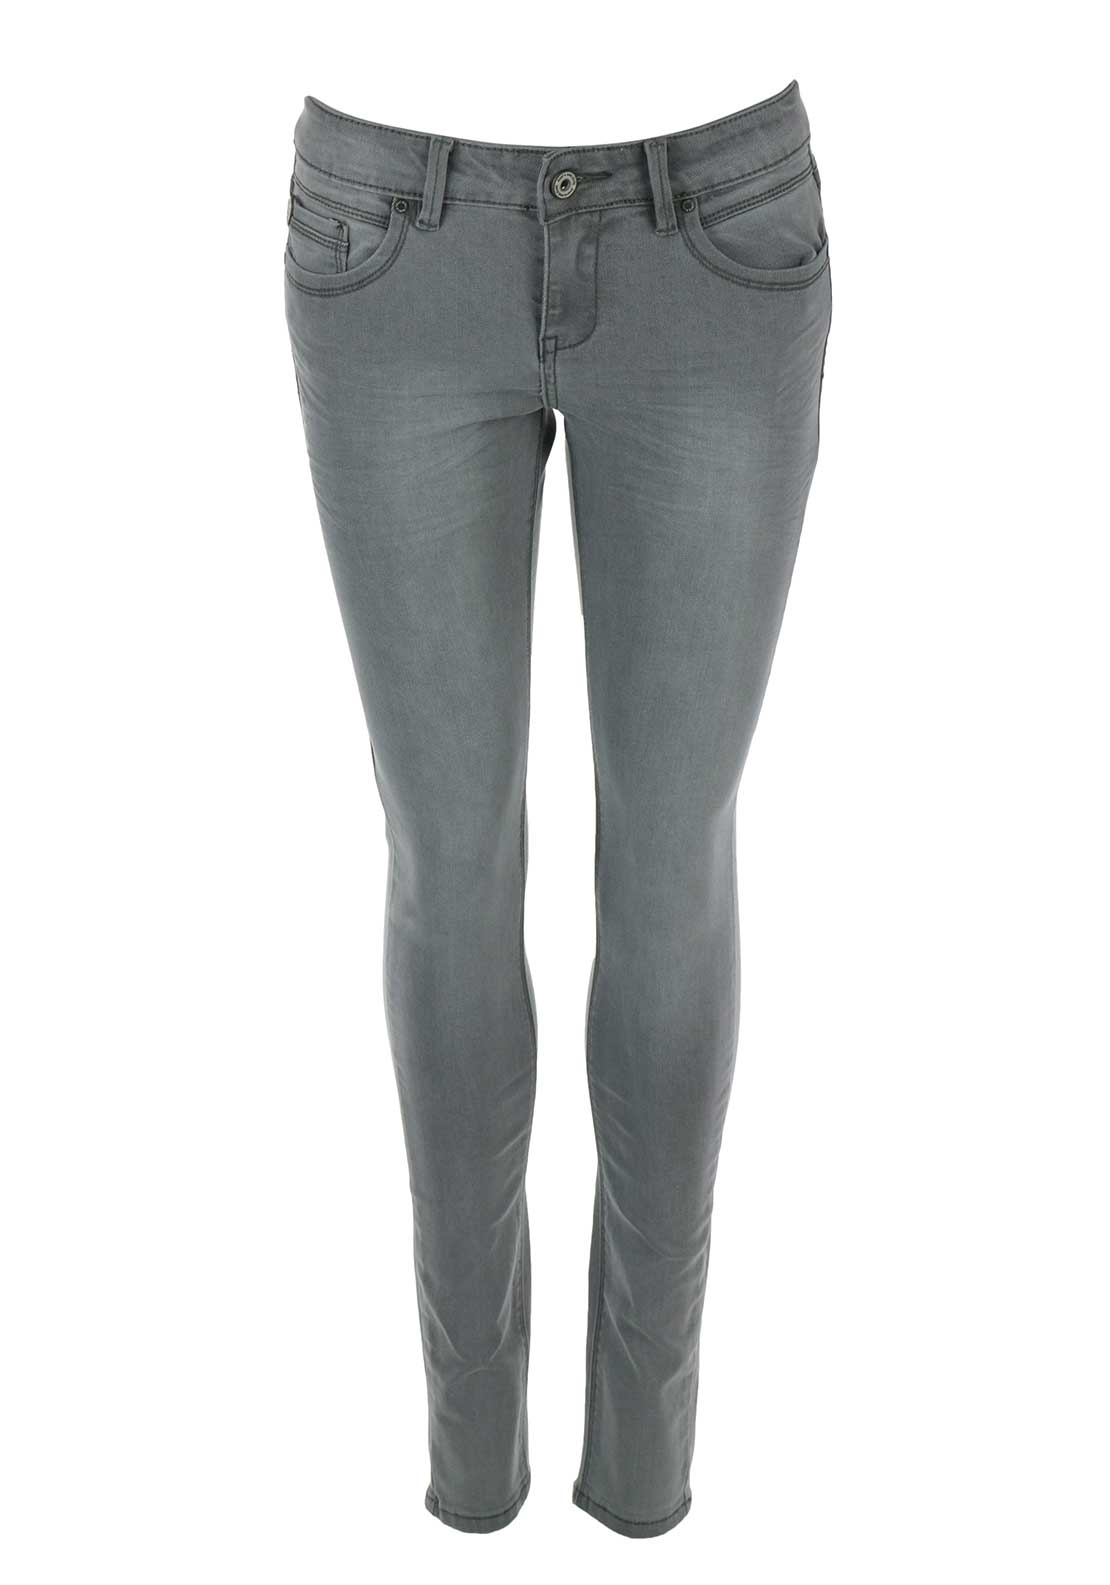 Rant & Rave Lucie Skinny Jeans, Grey